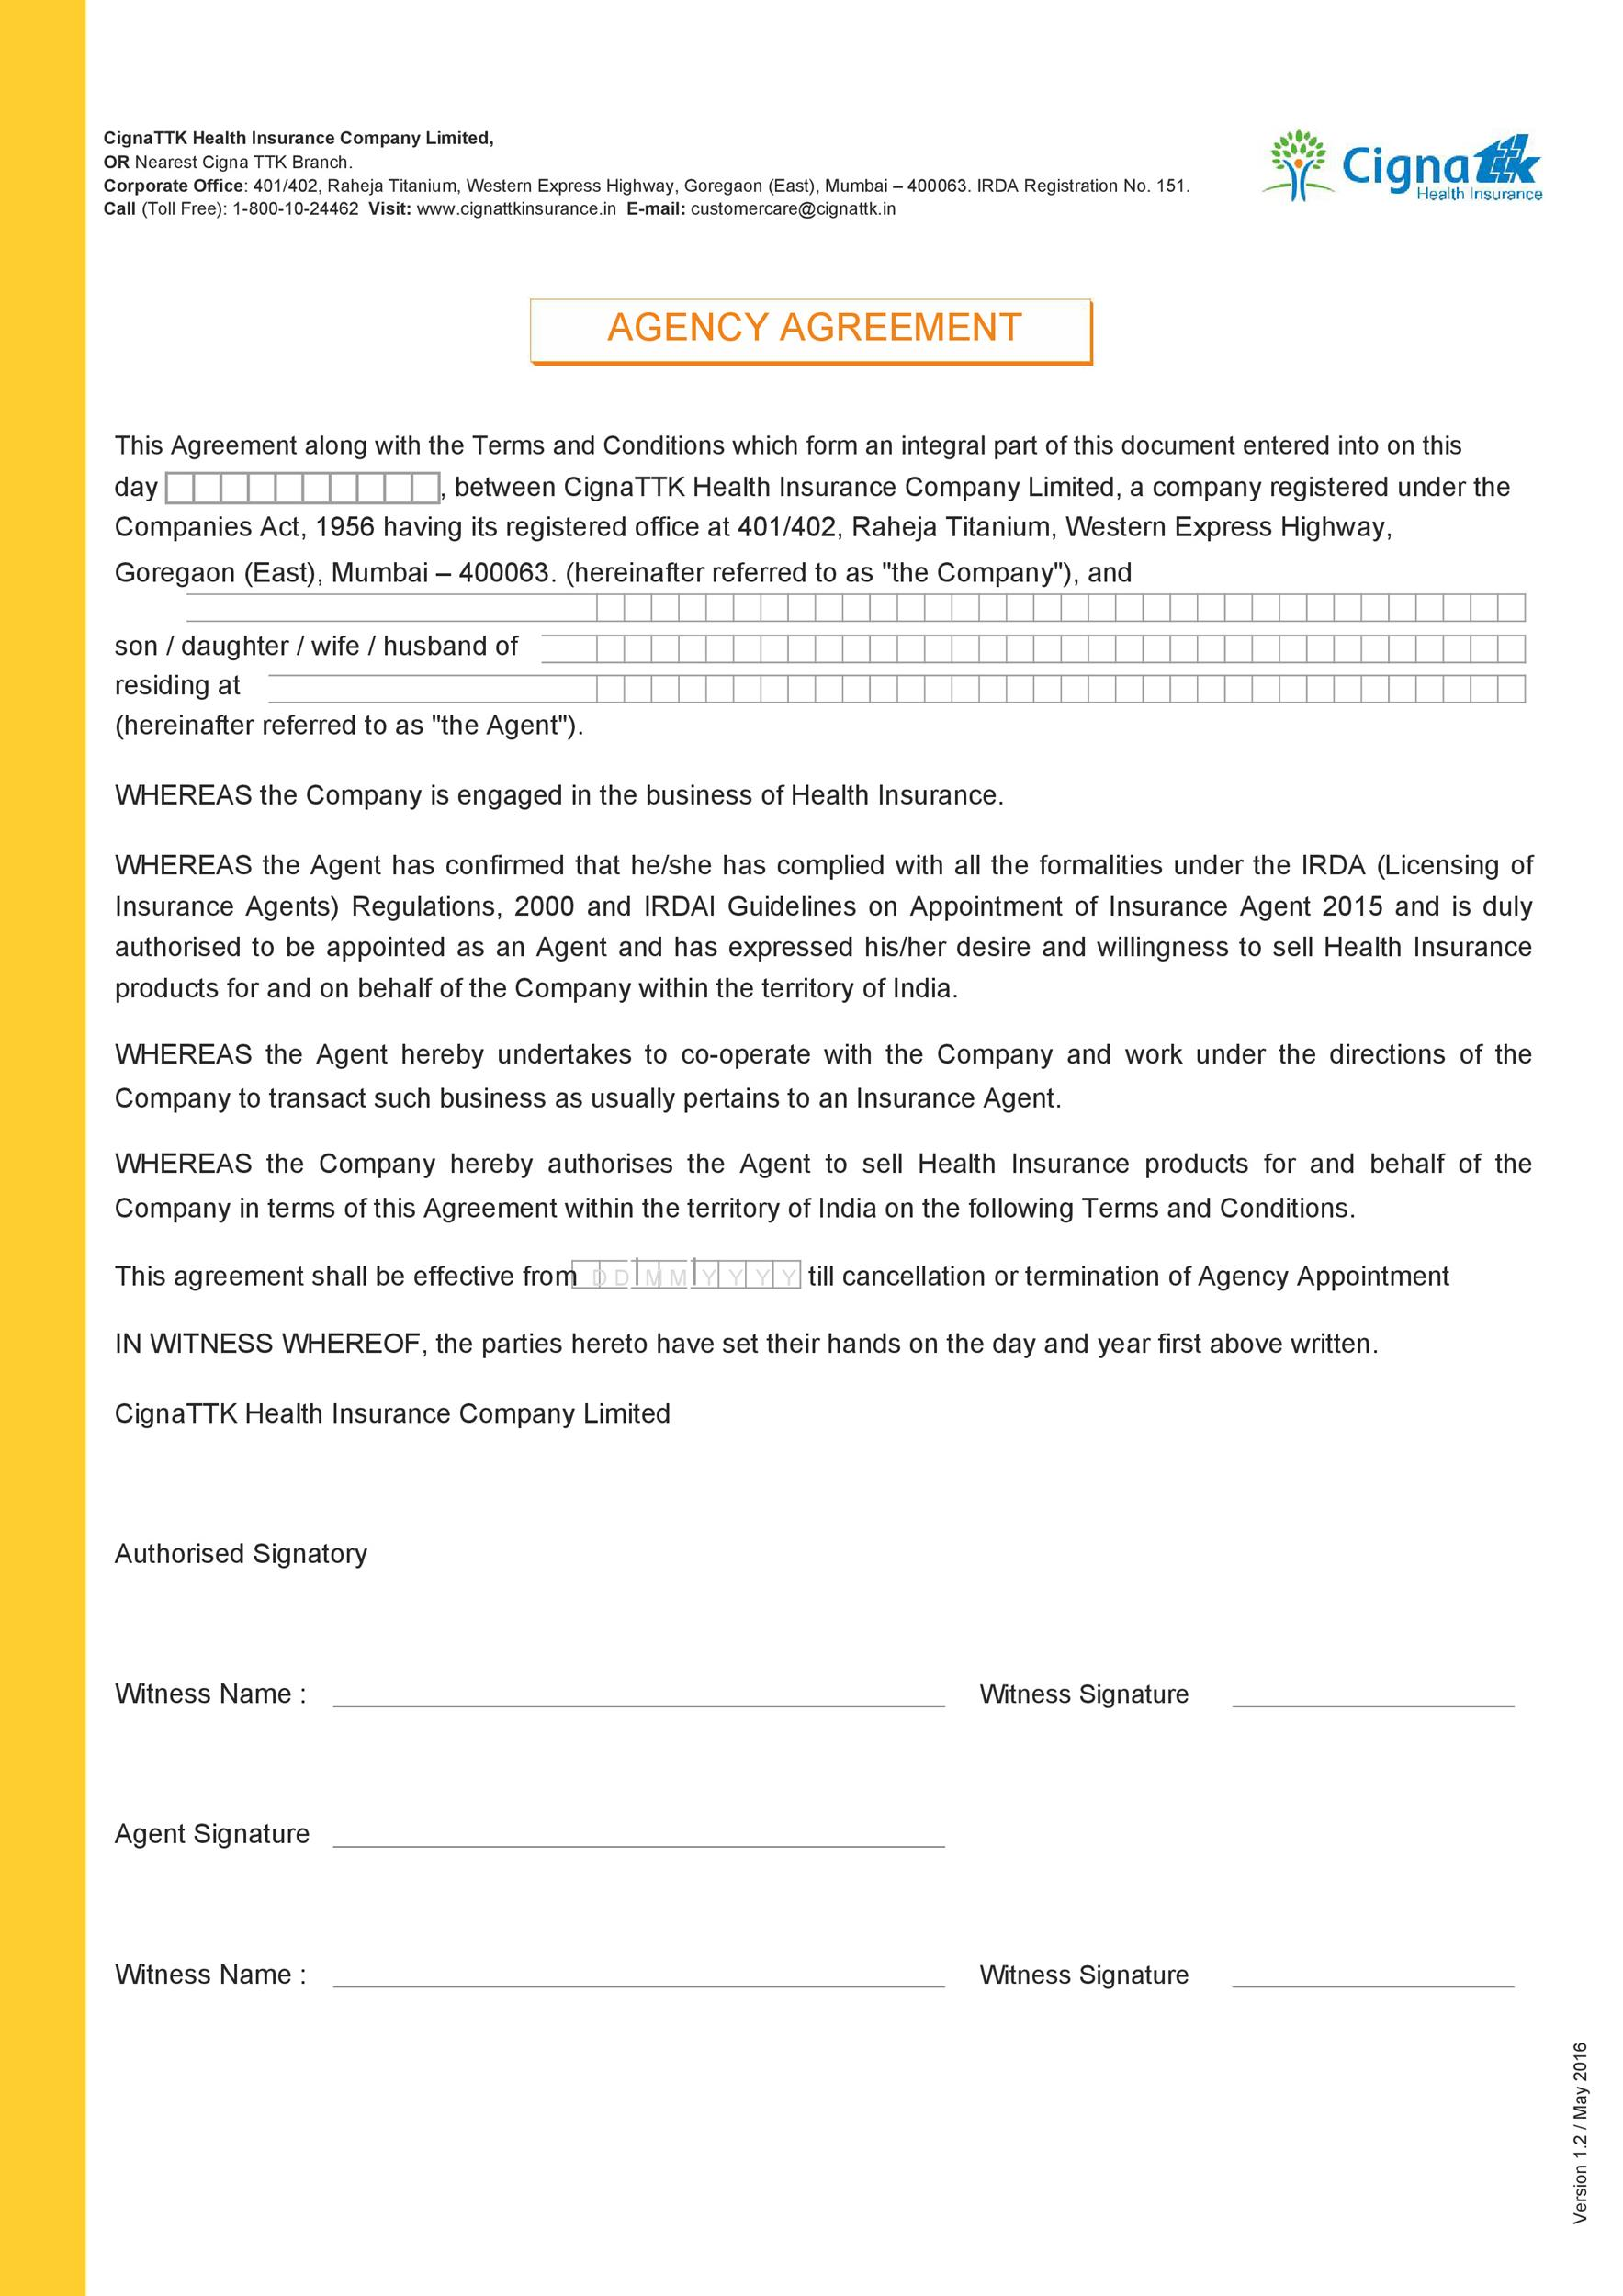 Free agency agreement 32